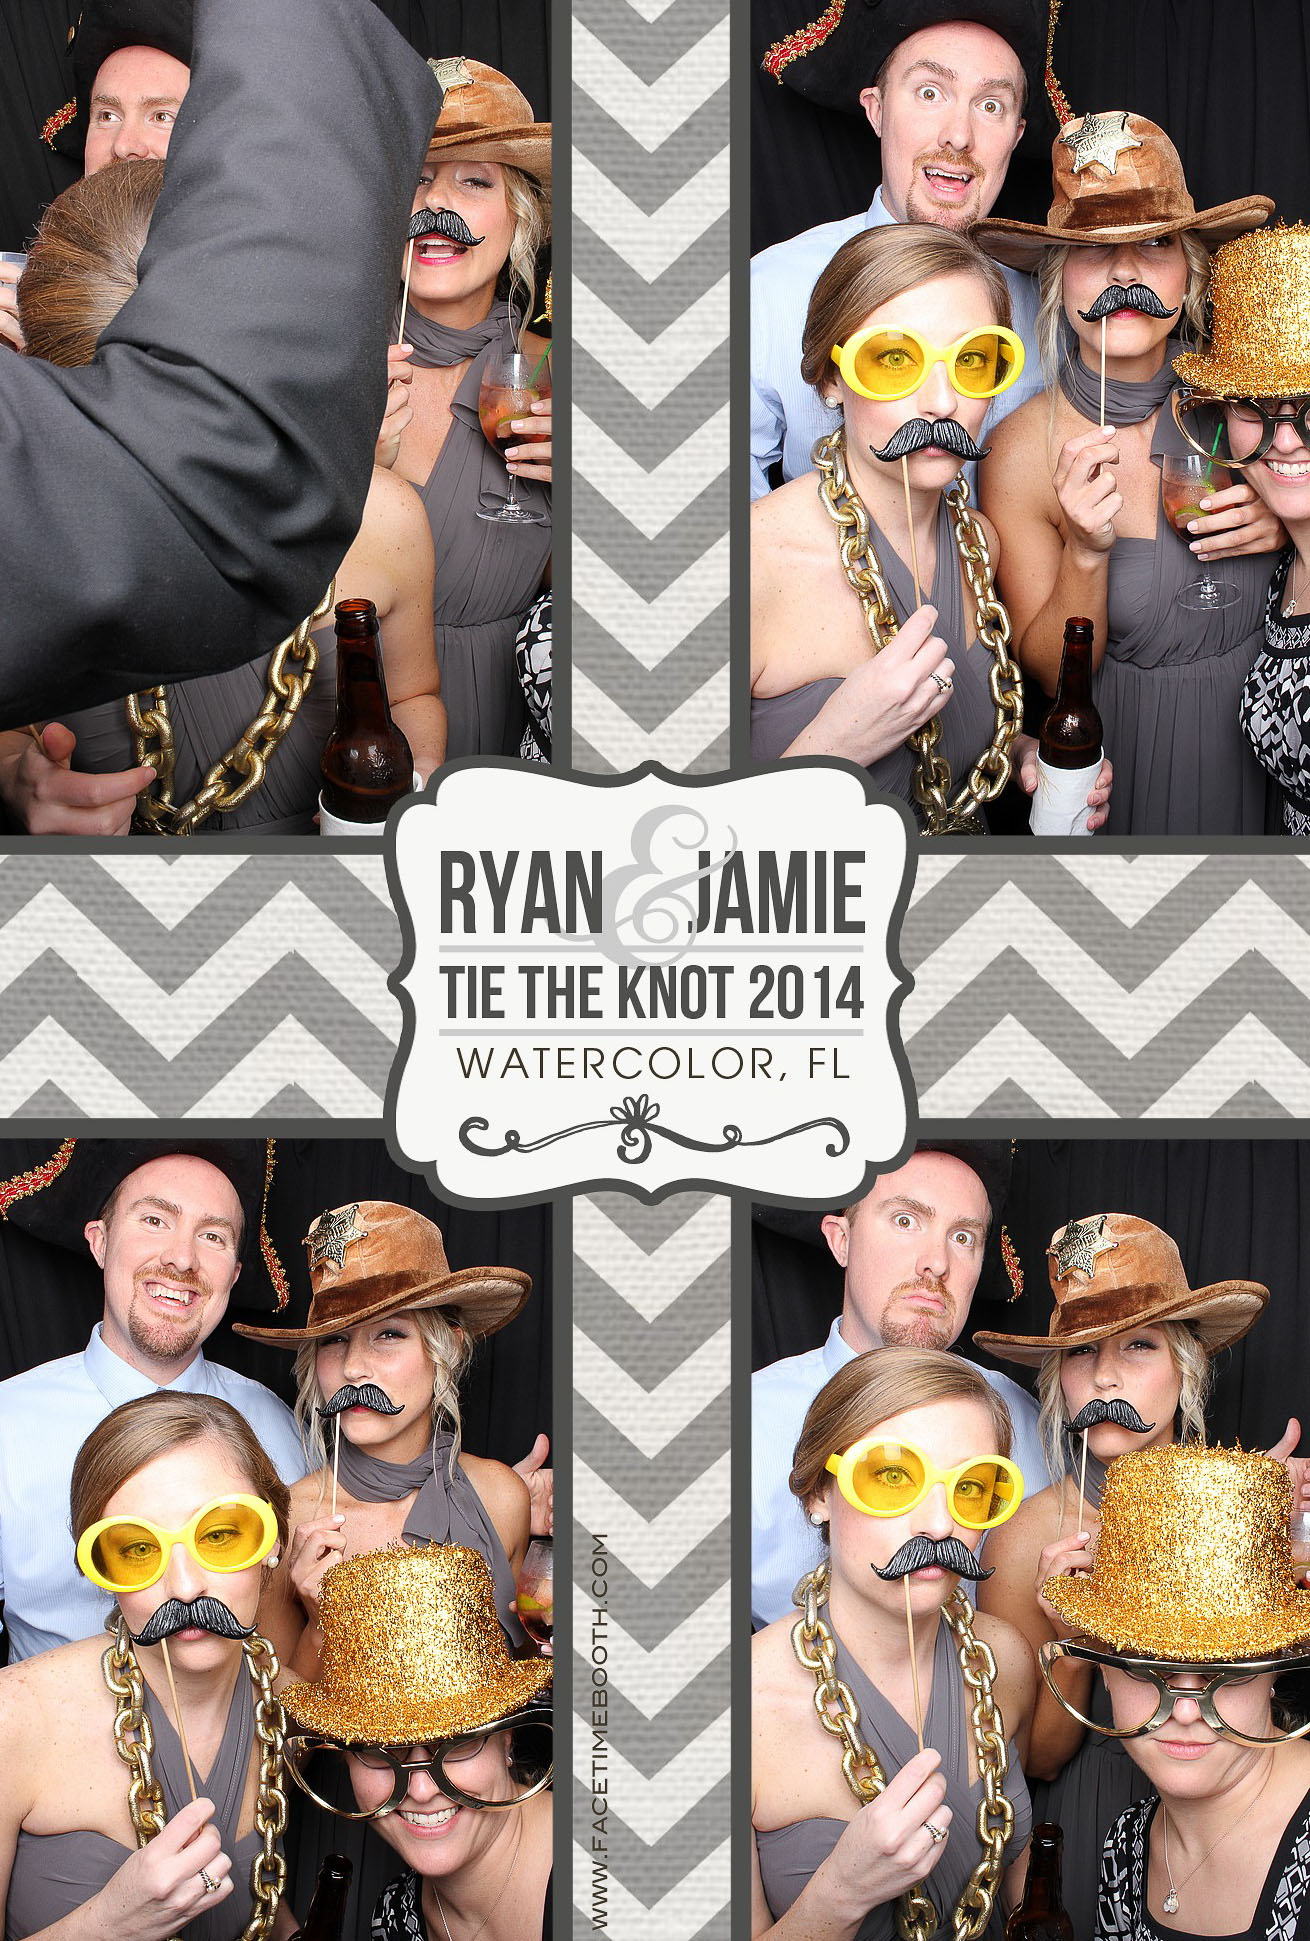 Facetime Photobooth 187 20140301 205719